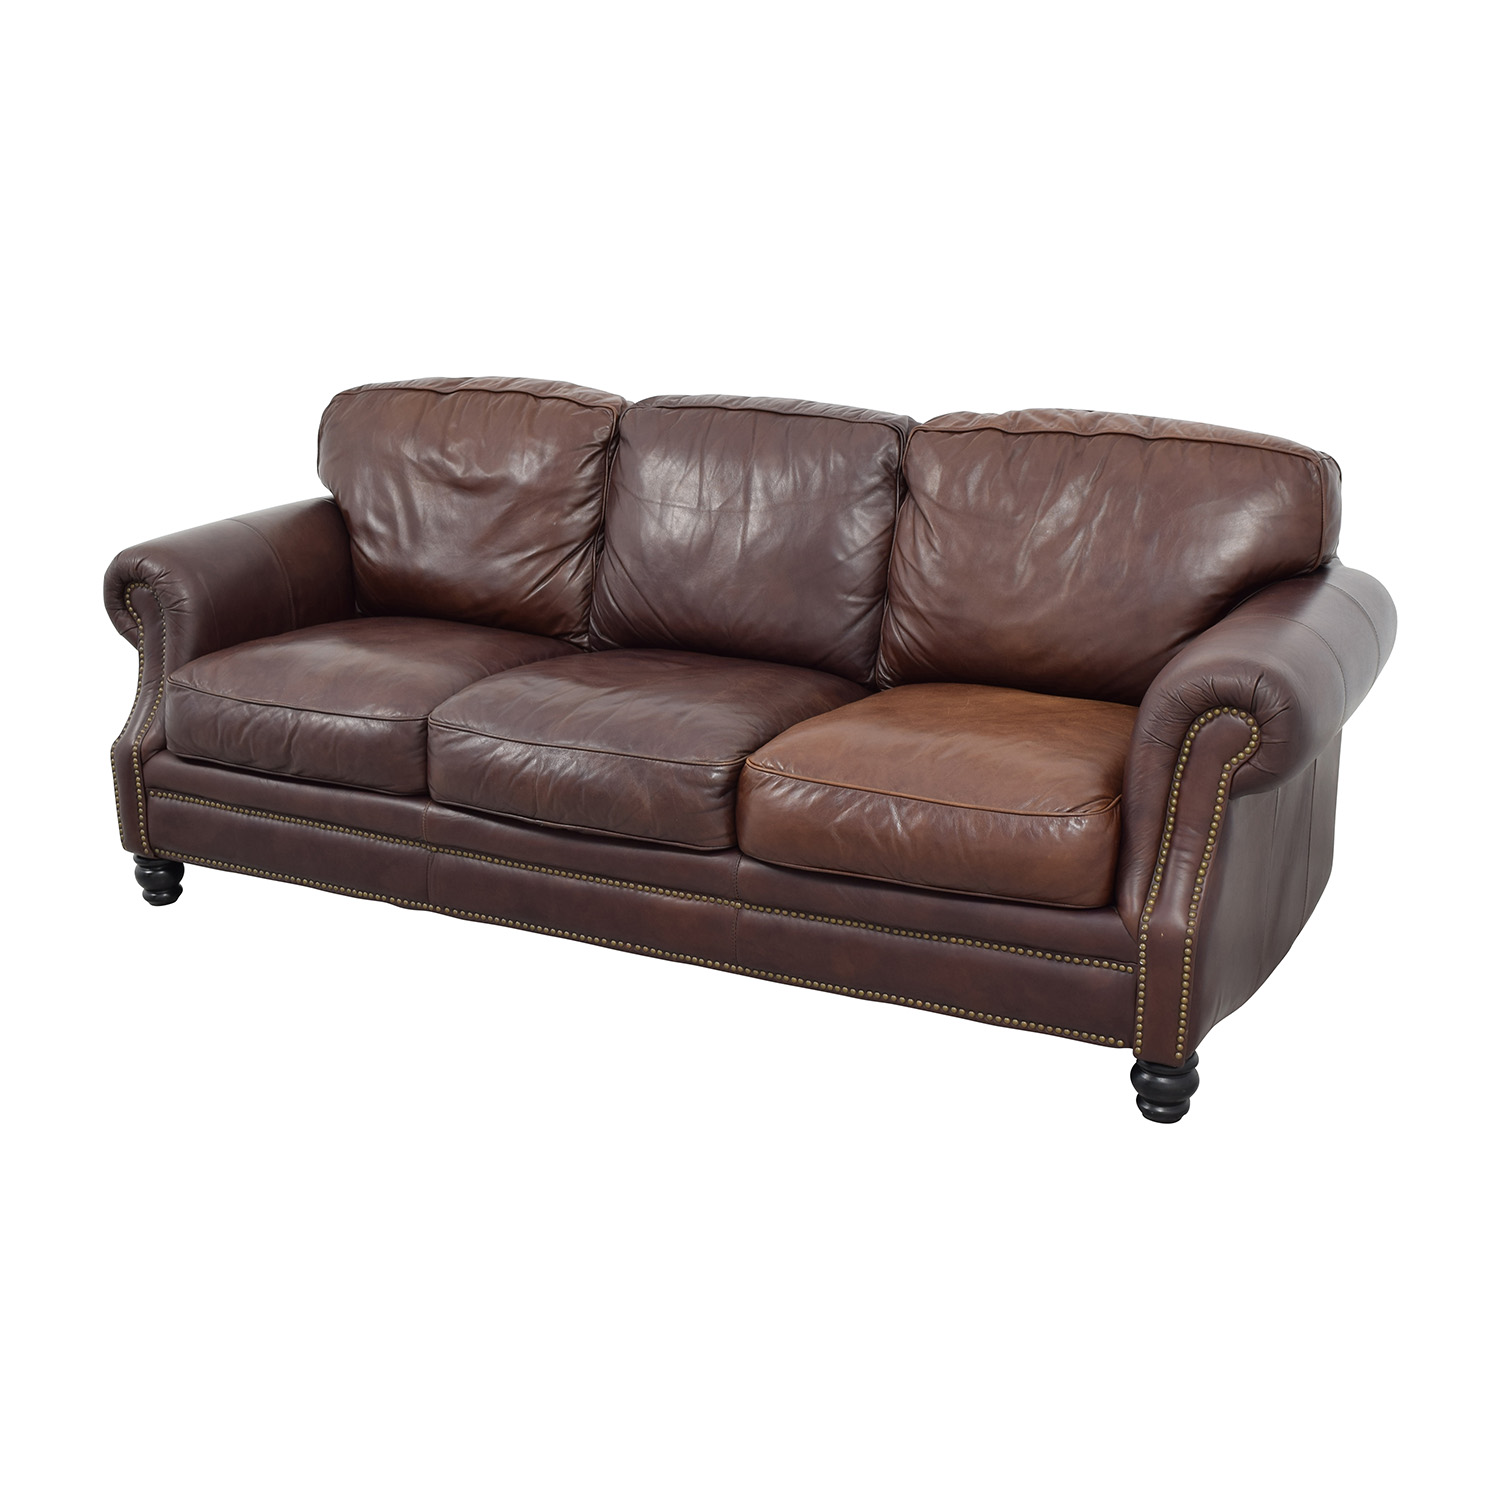 Beautiful sectional sofa toronto kijiji sectional sofas for Sectional sofas toronto kijiji